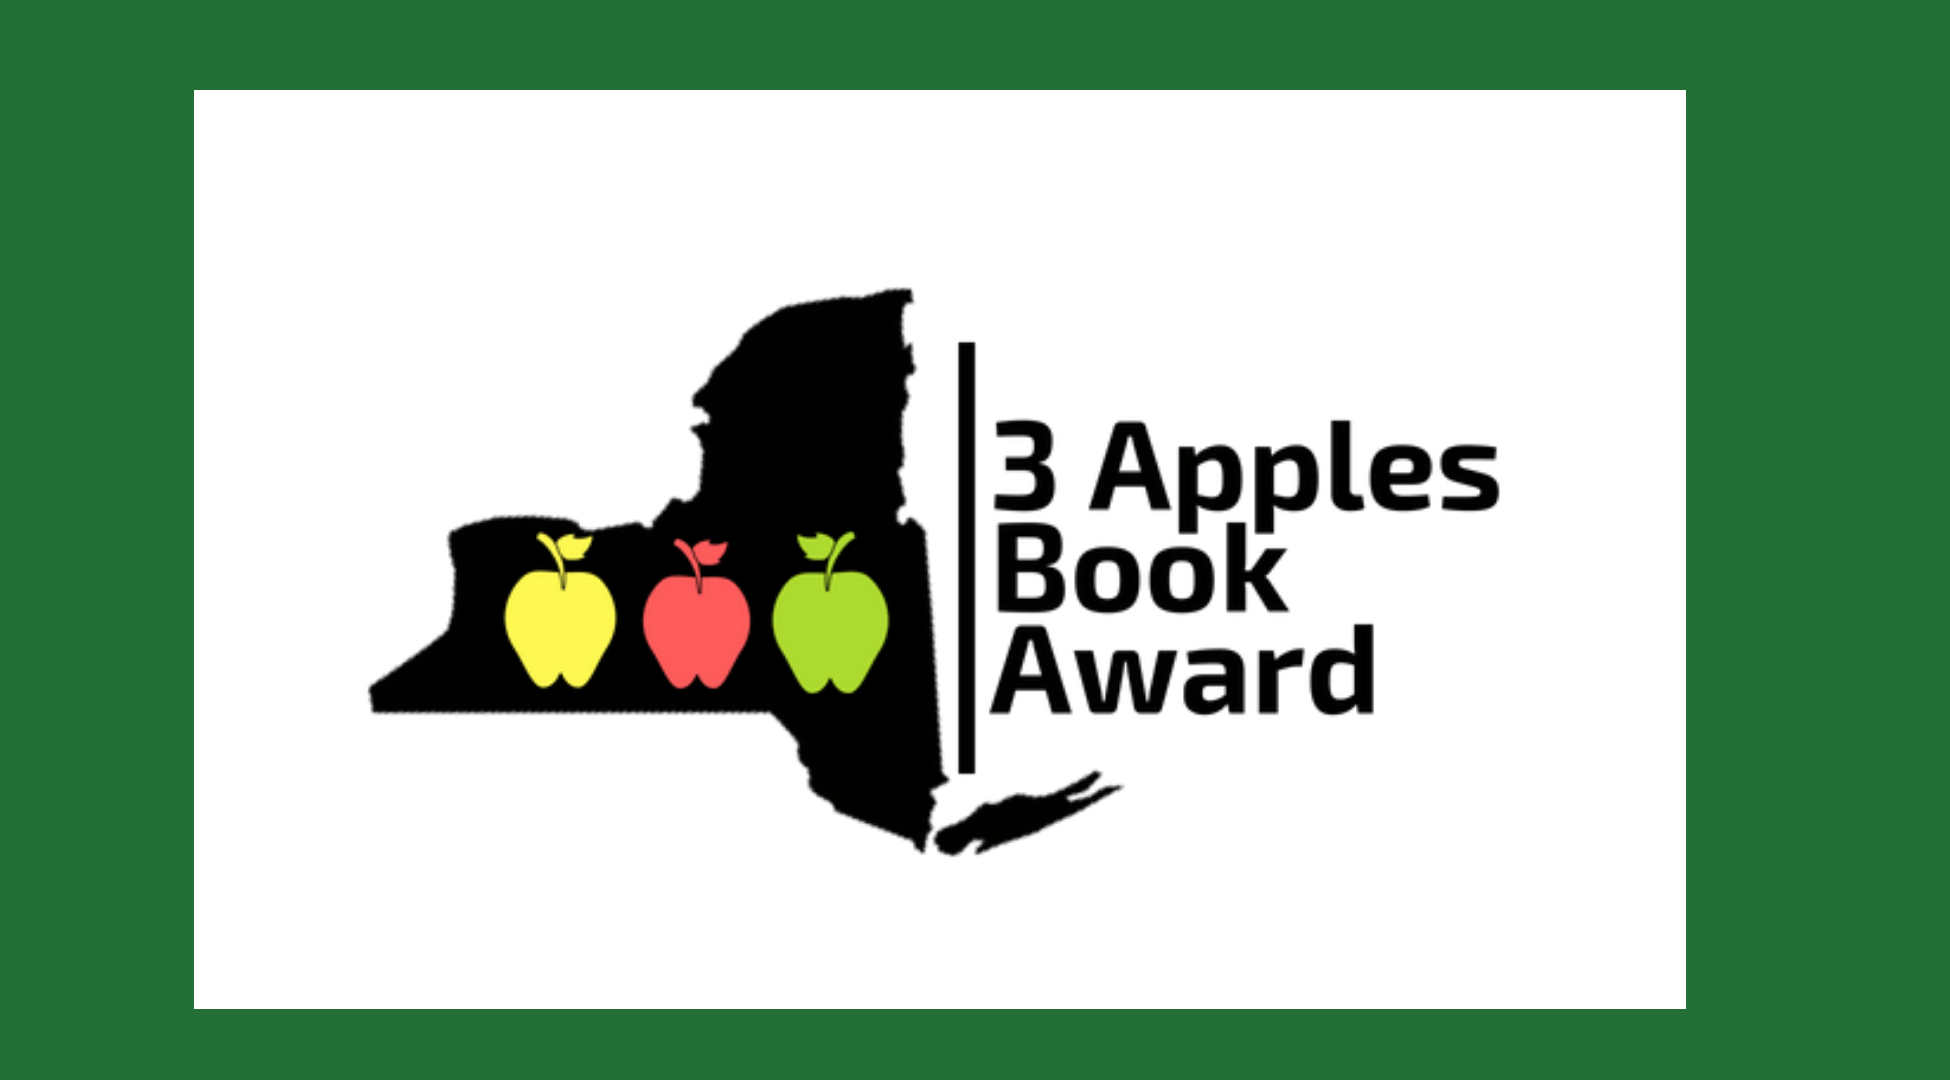 Three Apples Book Award